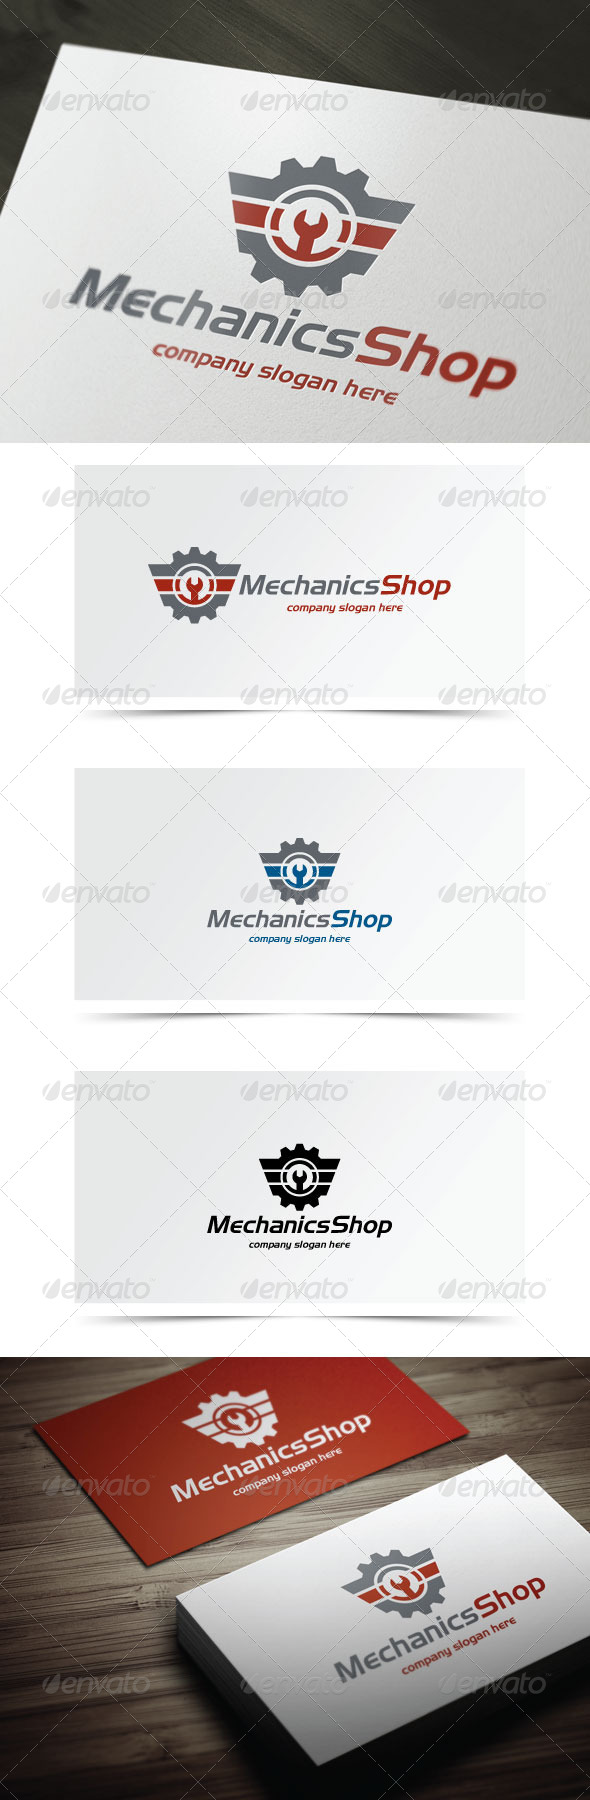 Mechanics Shop - Symbols Logo Templates